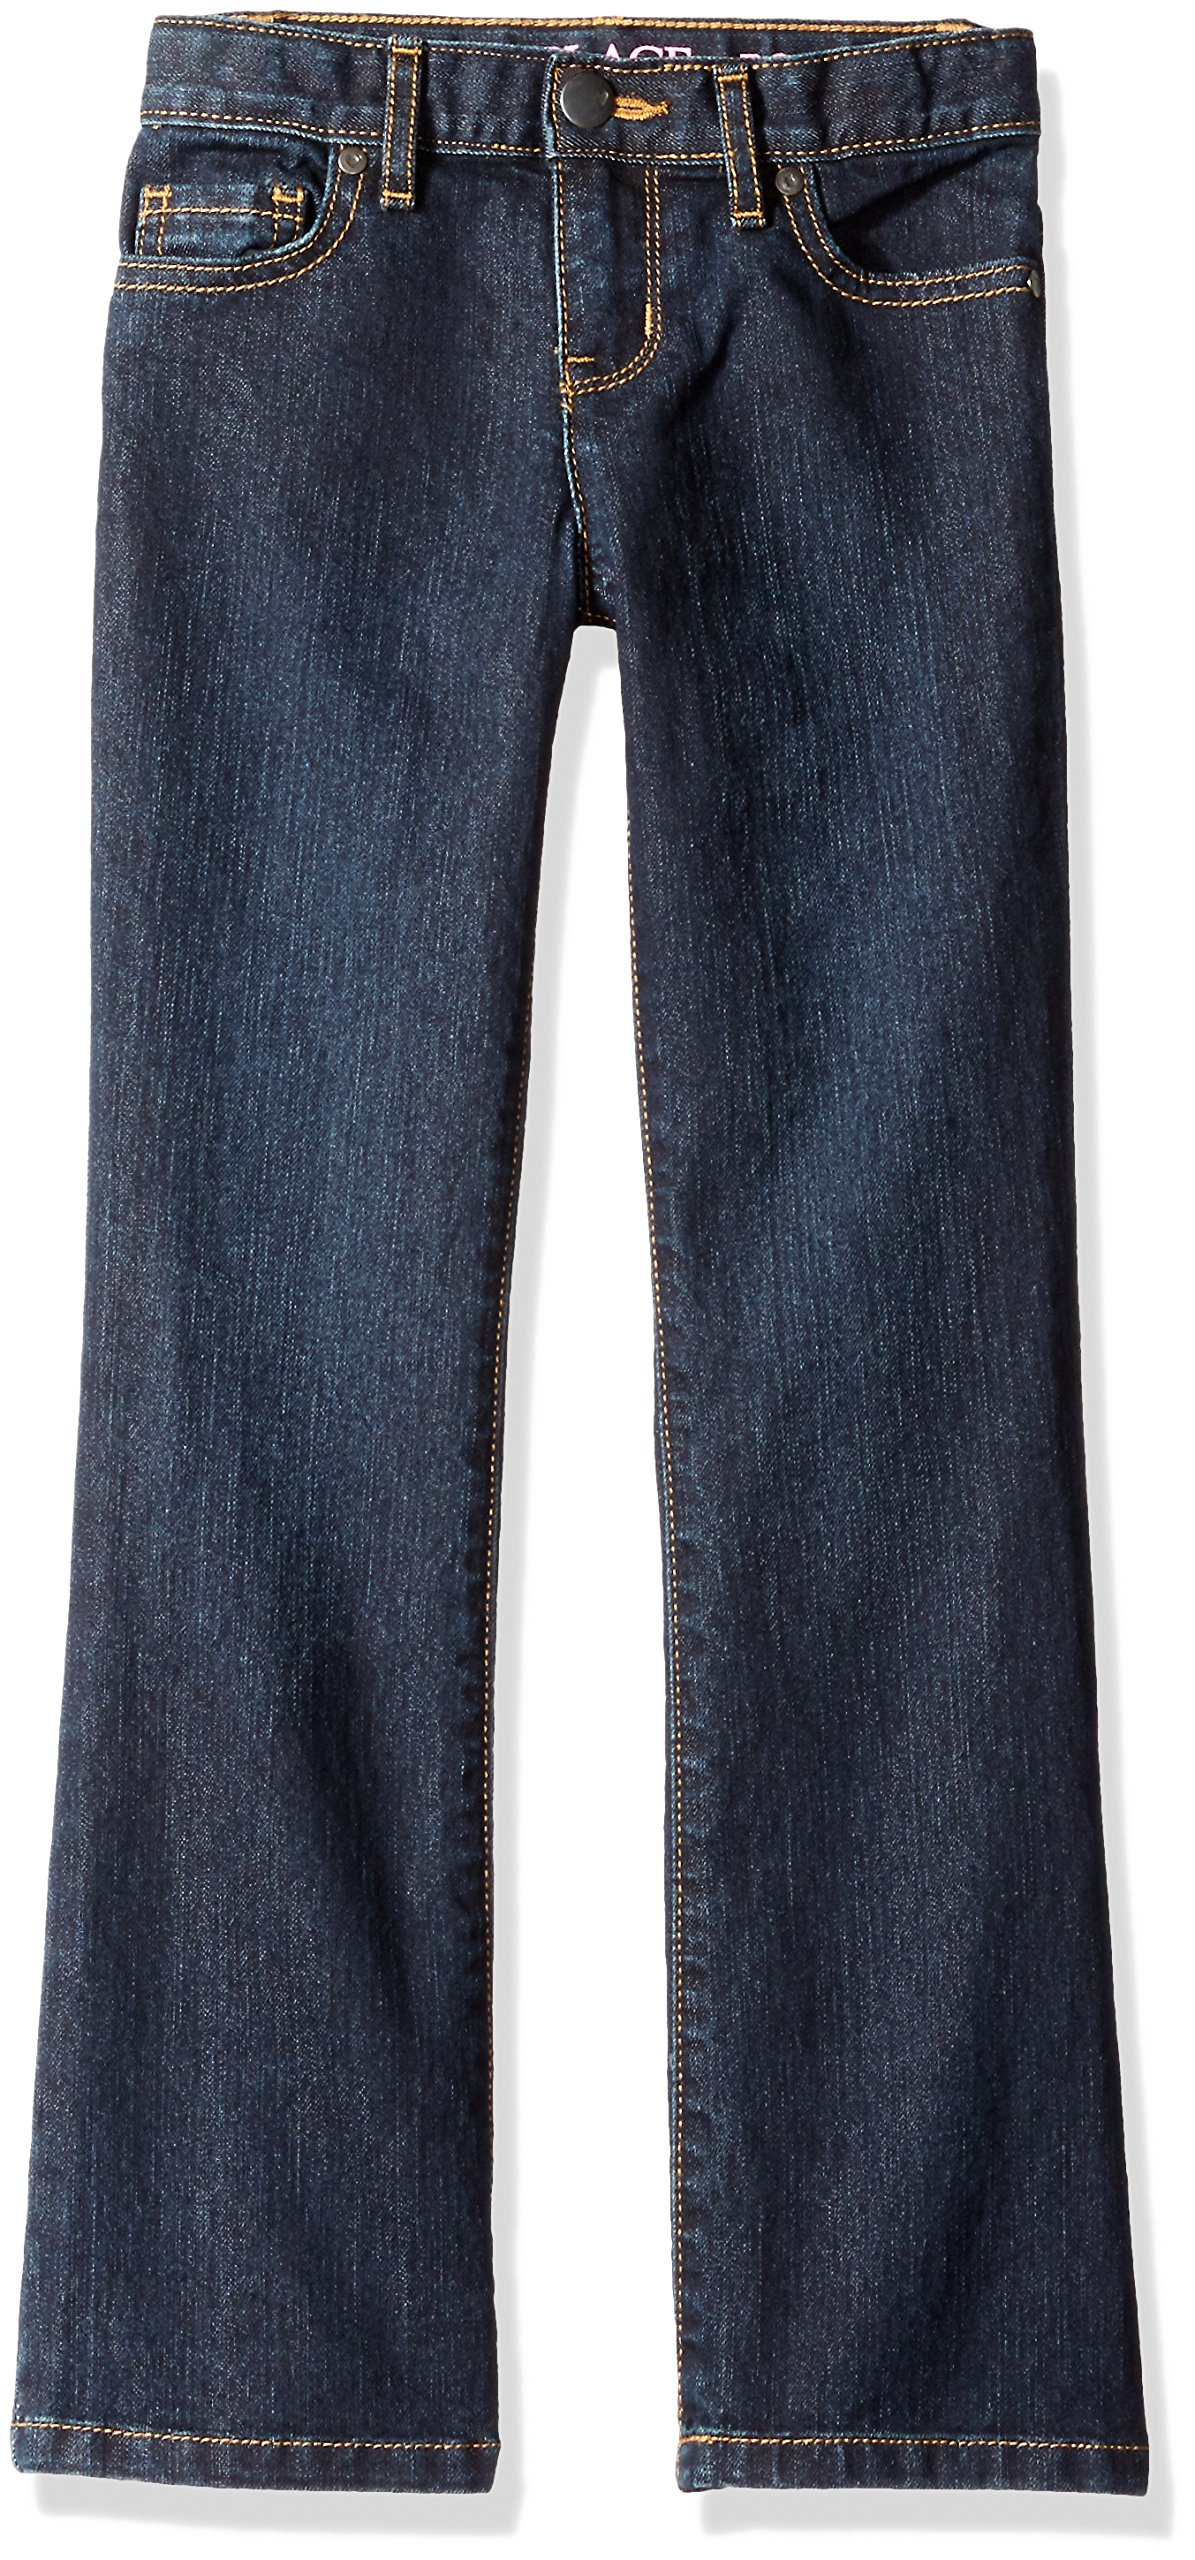 The Children's Place Girls Size Bootcut Jeans, Odyssey 50098, 8 Slim